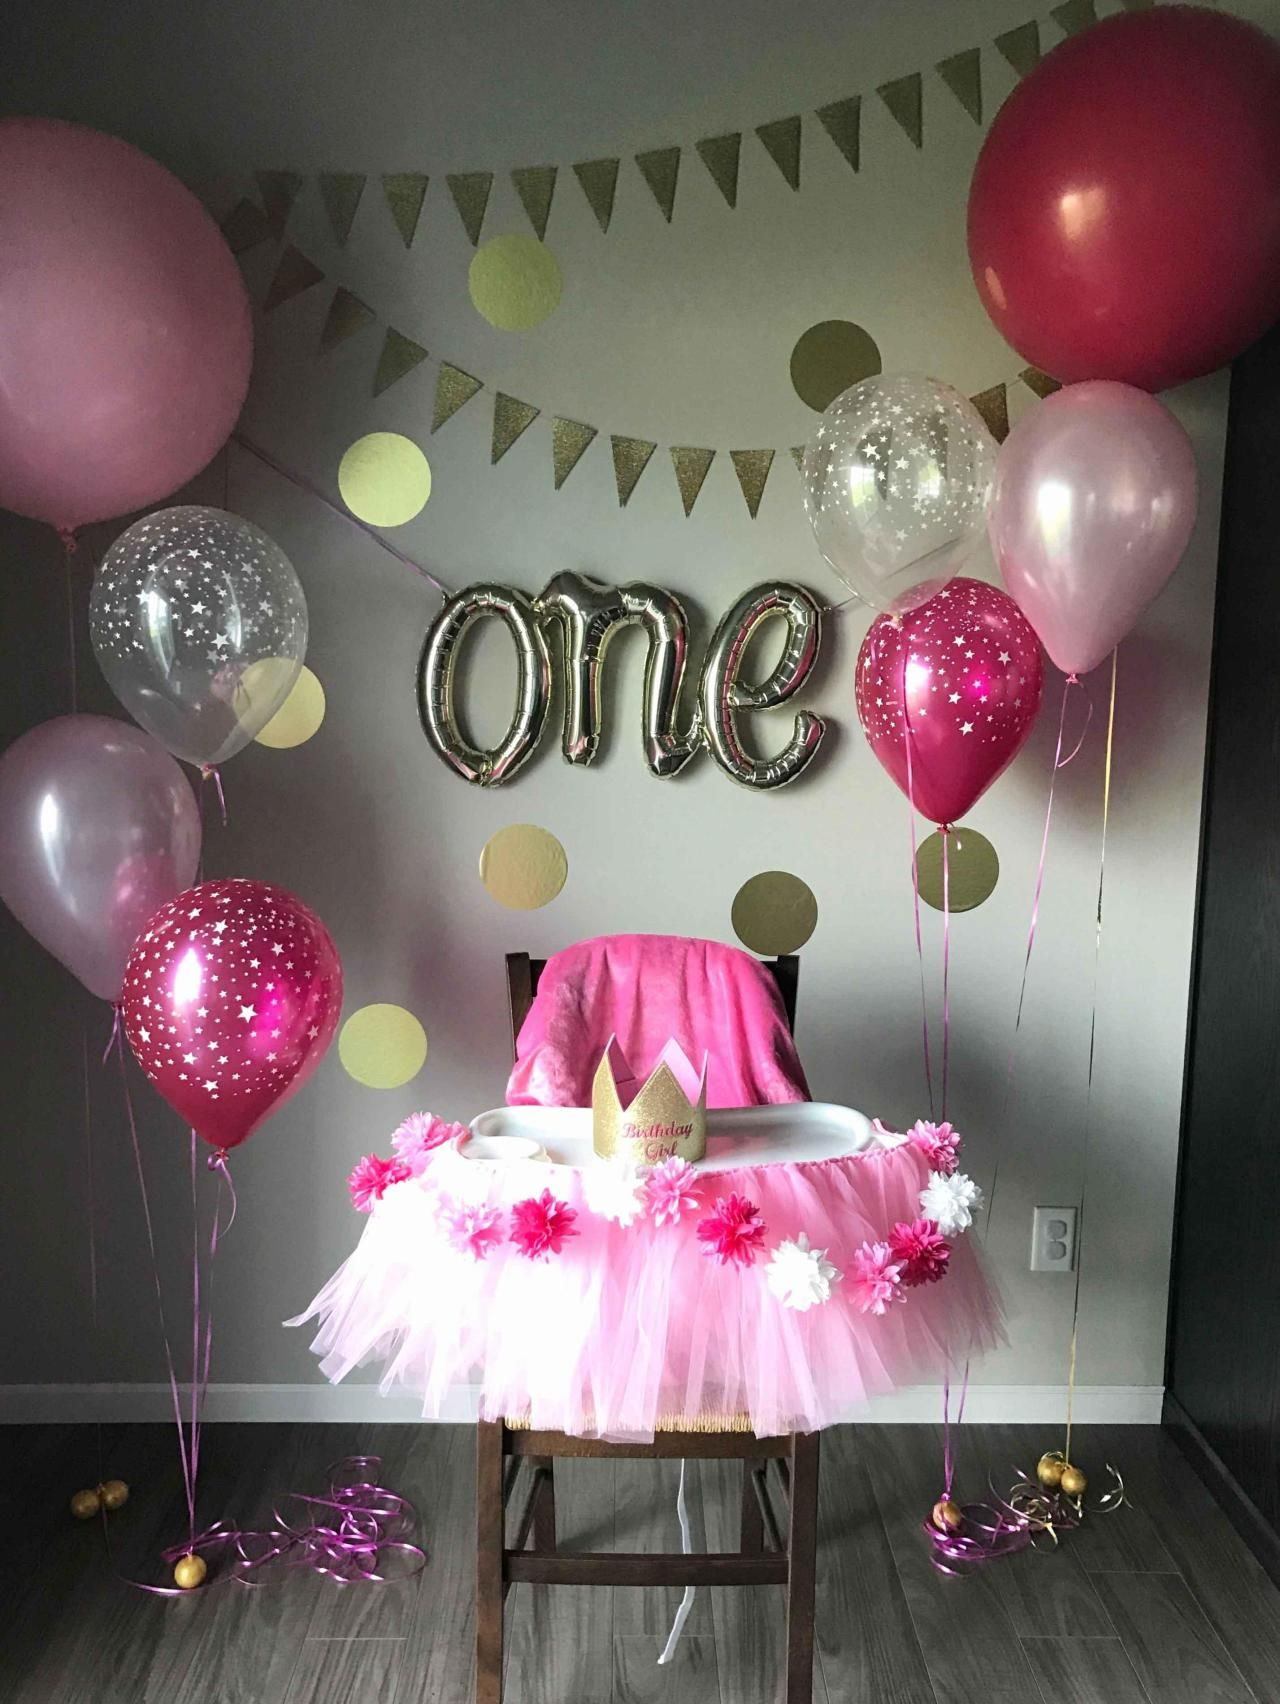 Girls Birthday Party Themes Unique Evergreen Stylish Decoration Idea For One Year Old Boy Or